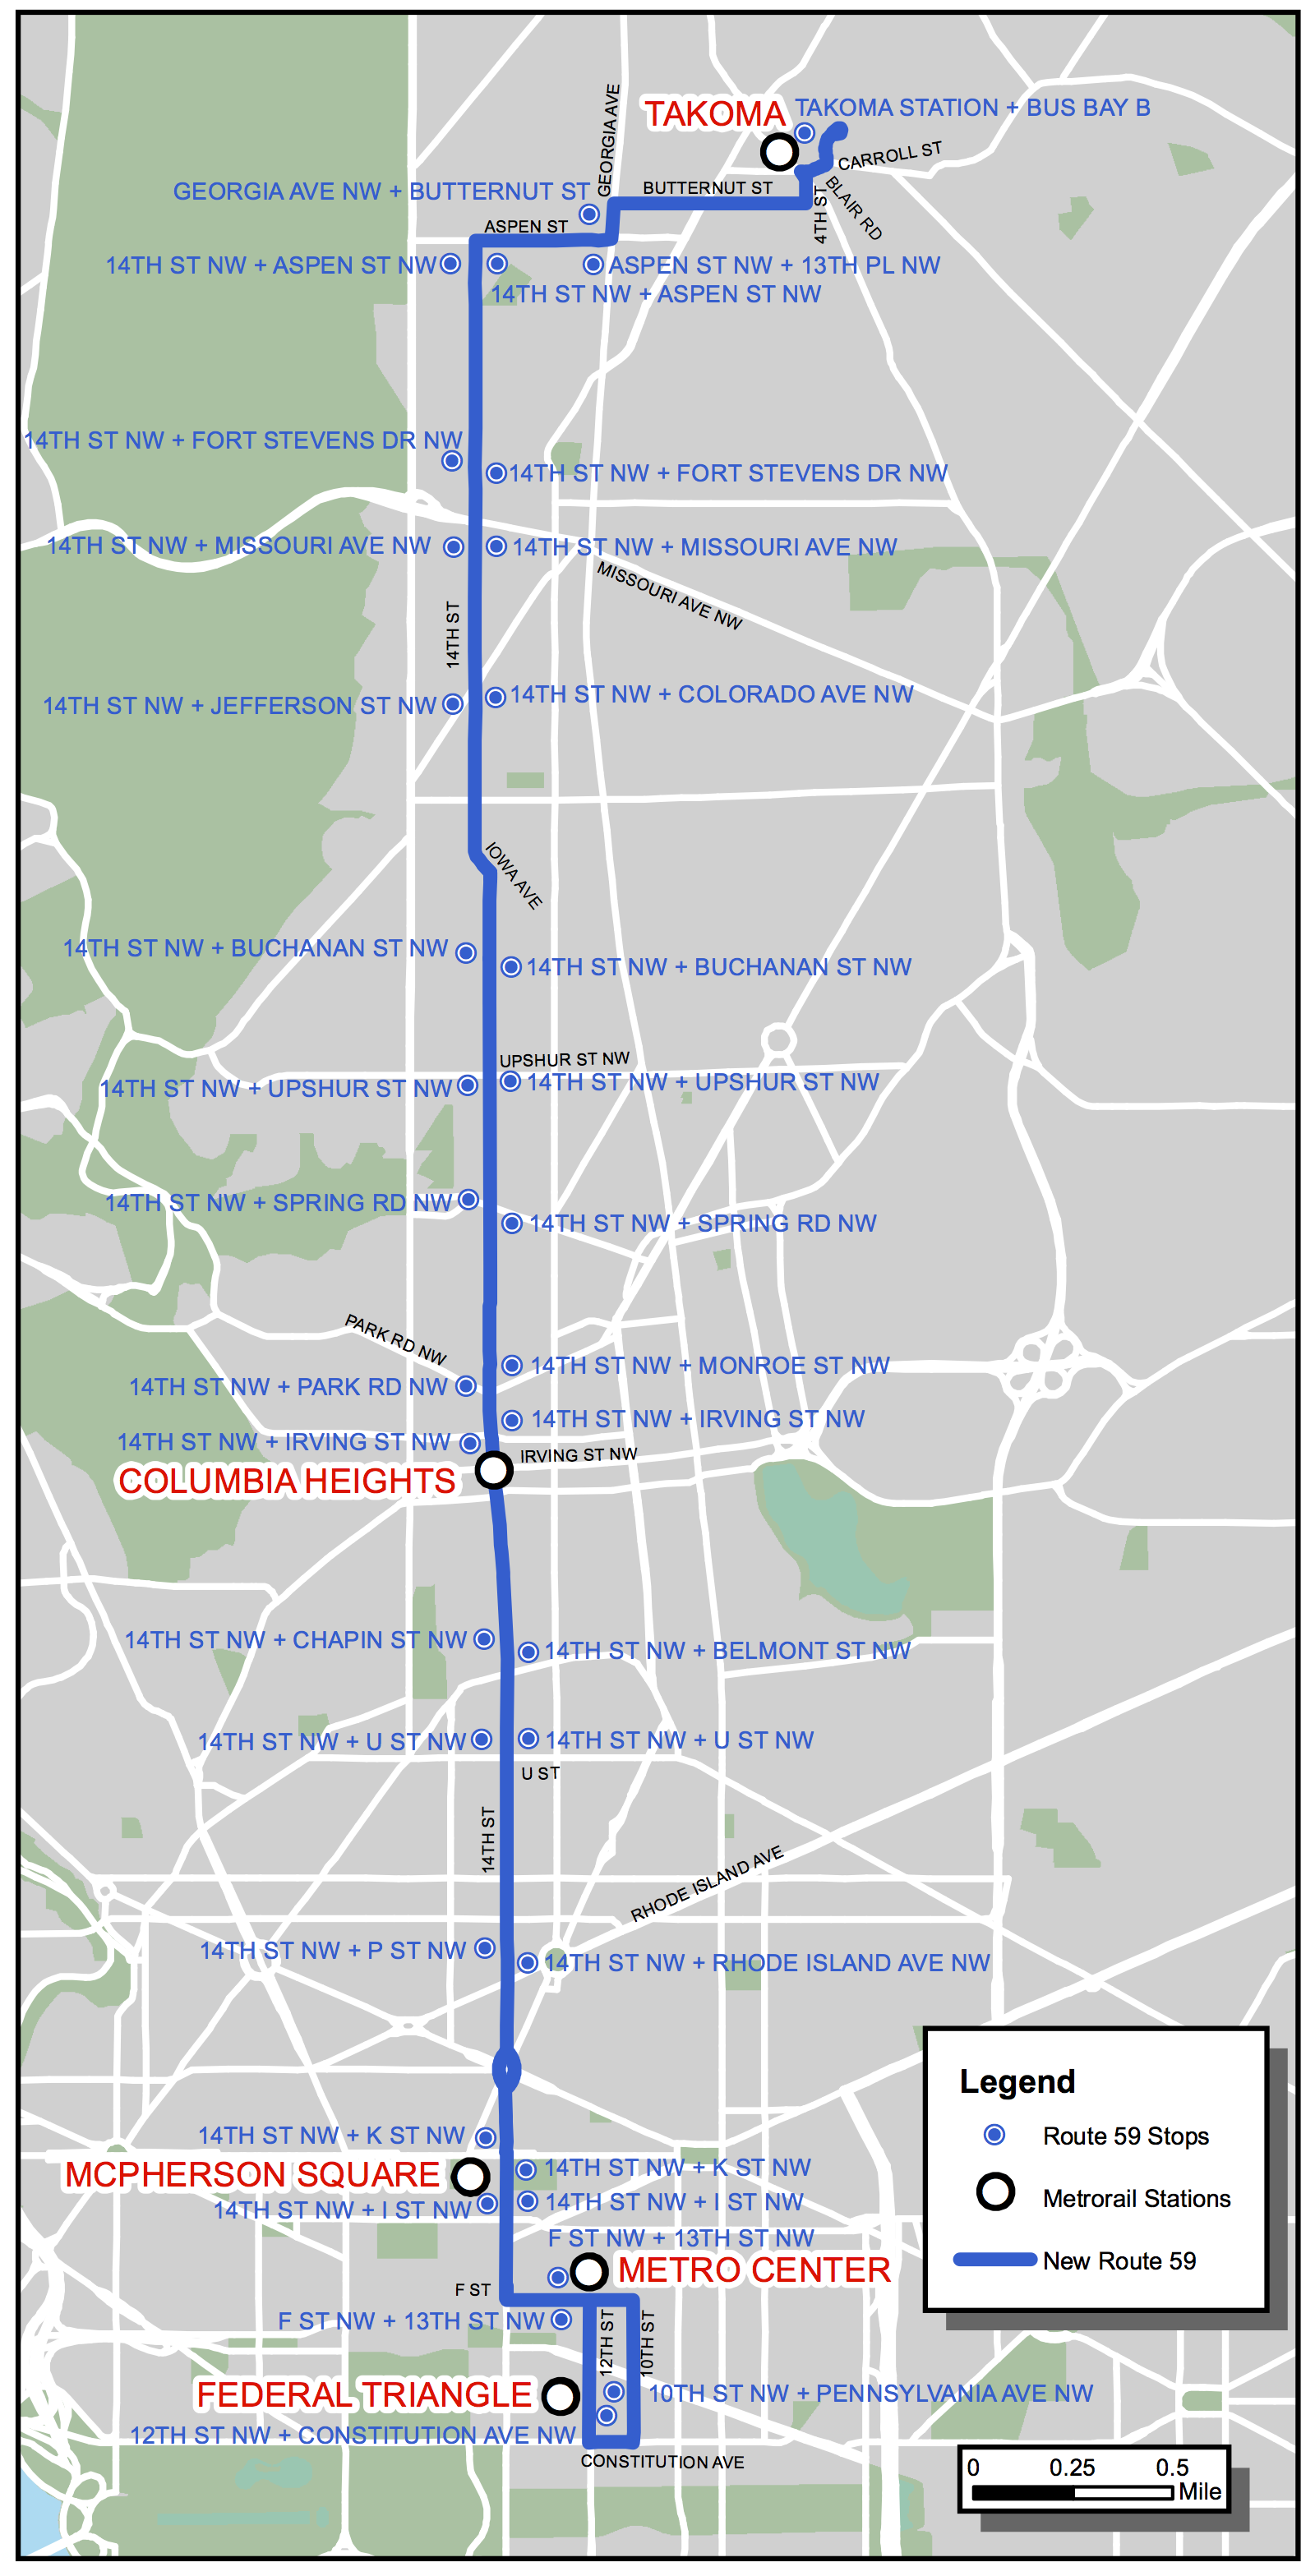 MetroExtra 59 route map